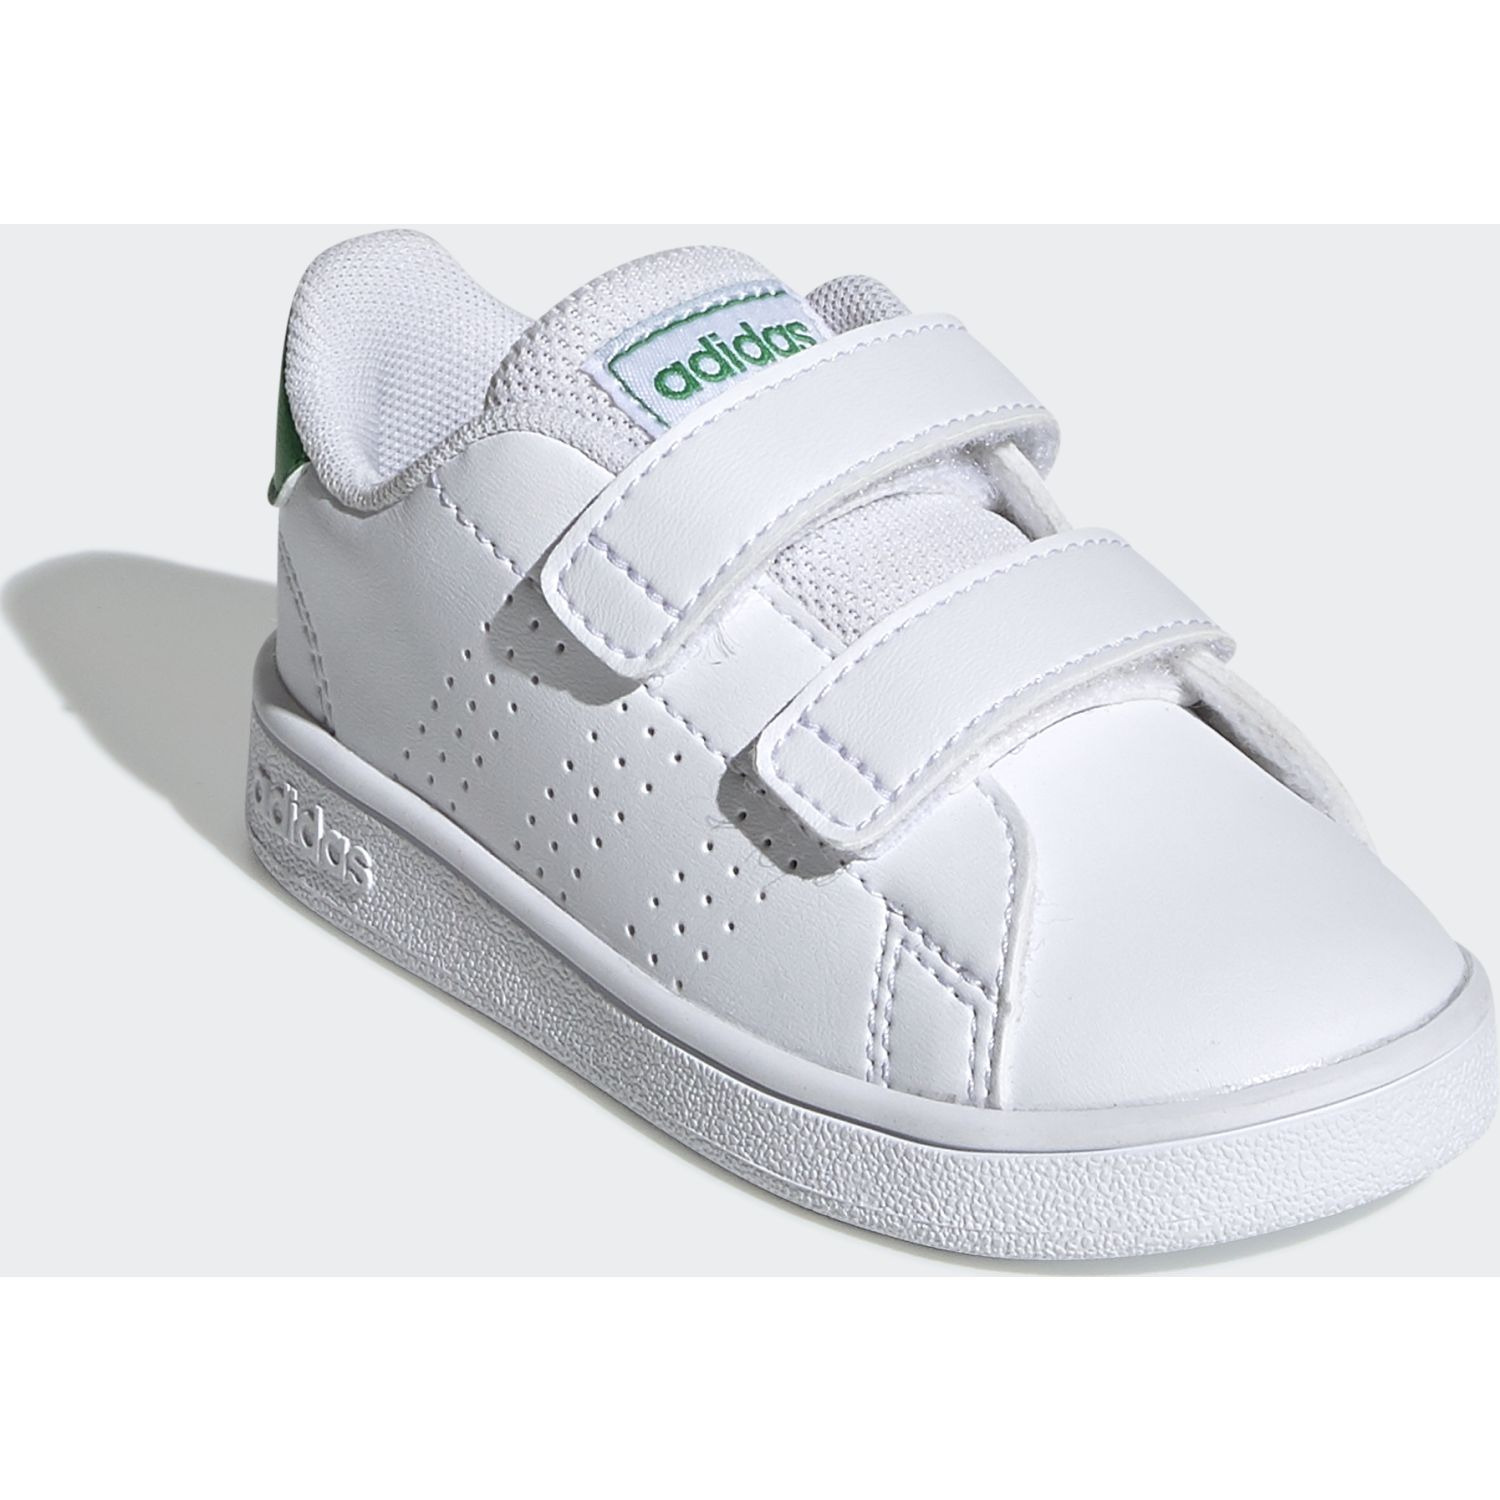 Adidas Advantage I Blanco / verde Walking